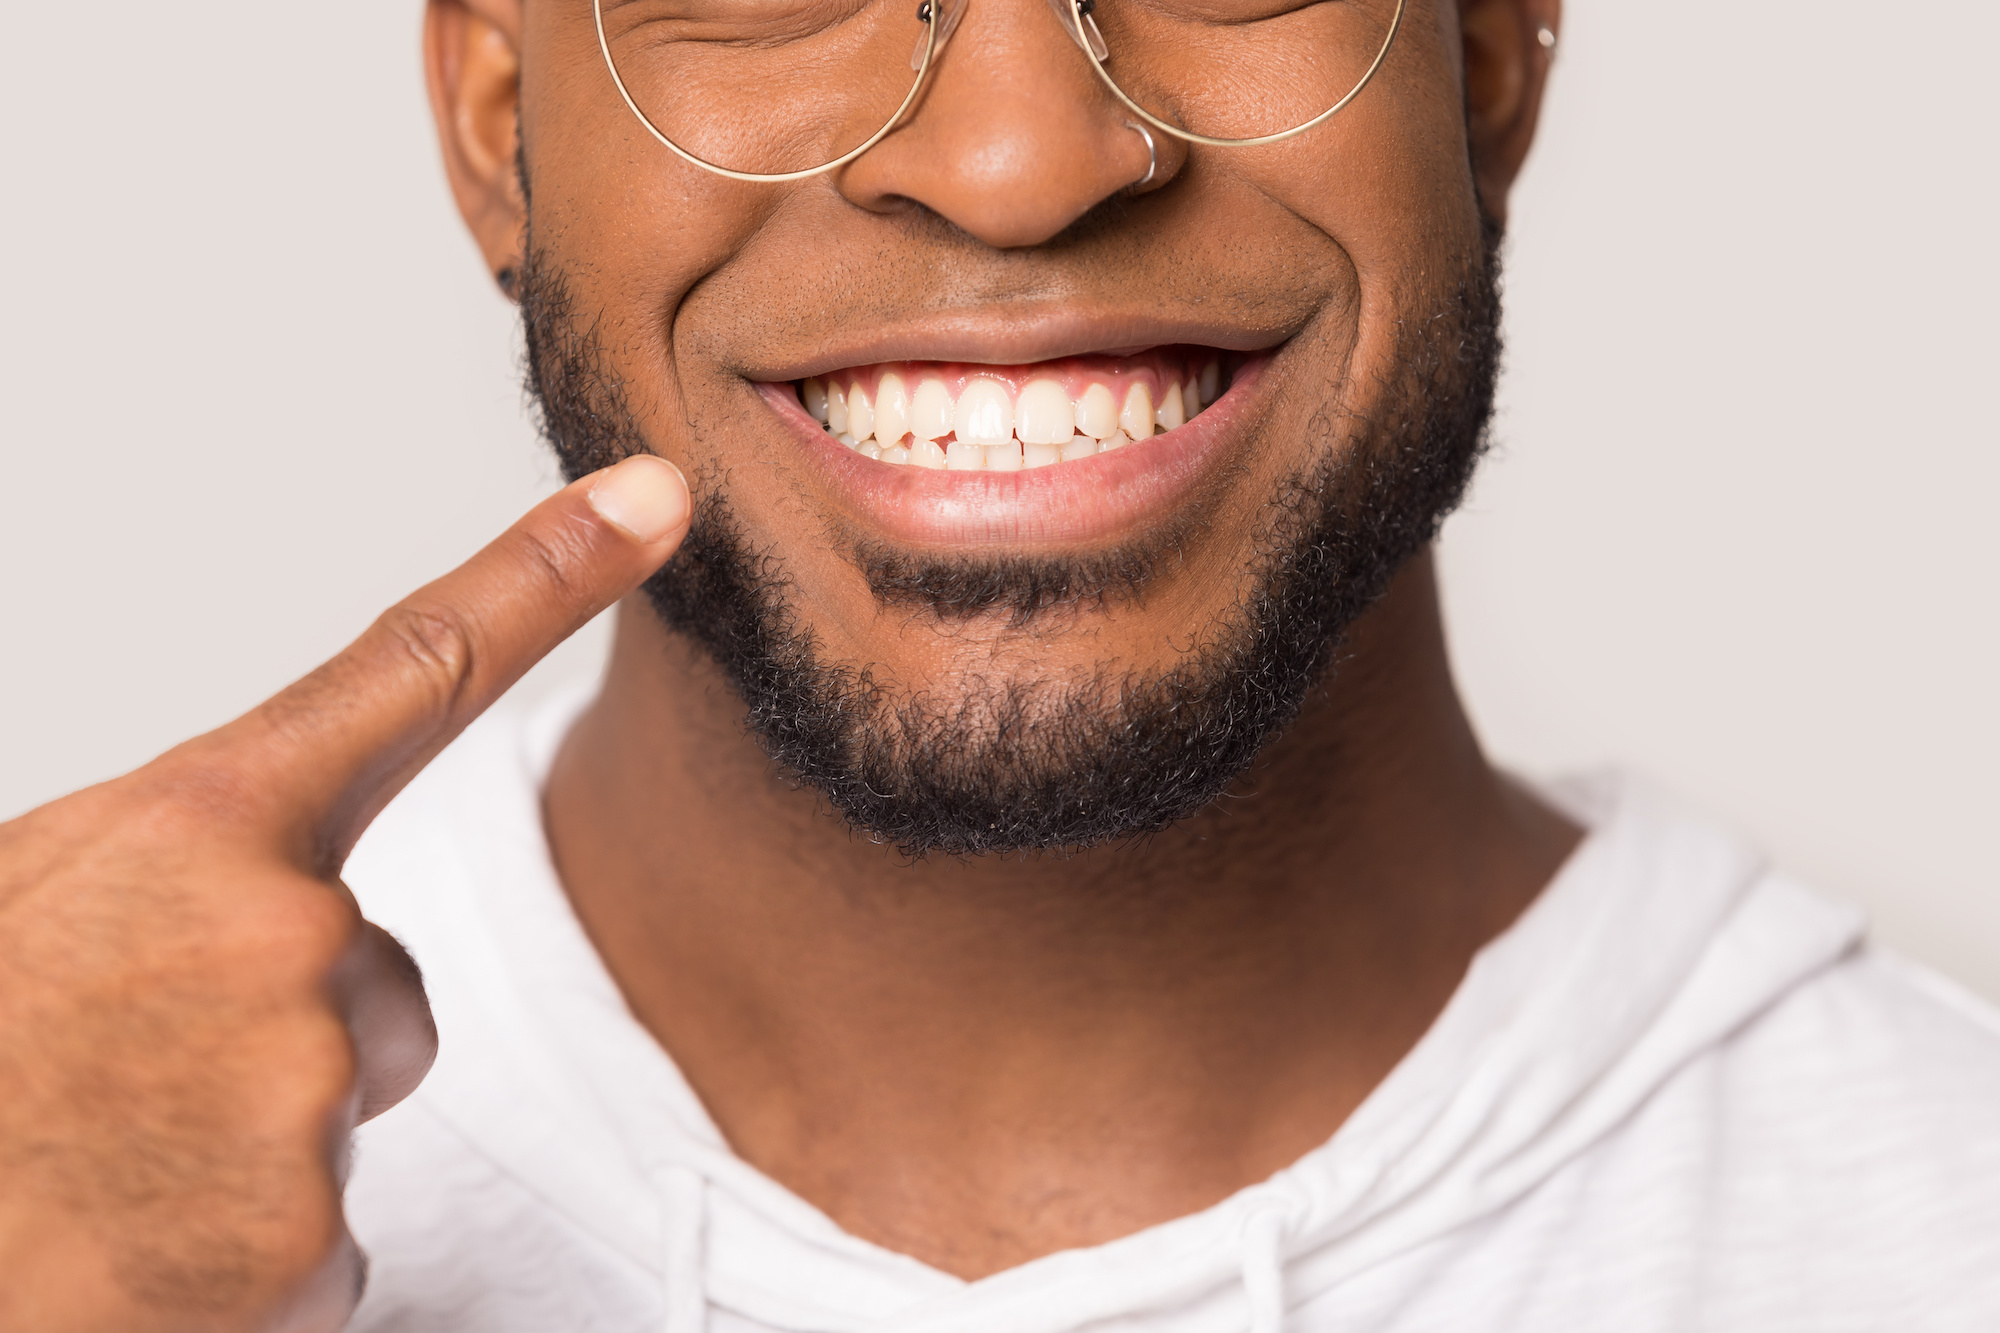 How To Keep Your Teeth Healthy During The Coronavirus Outbreak